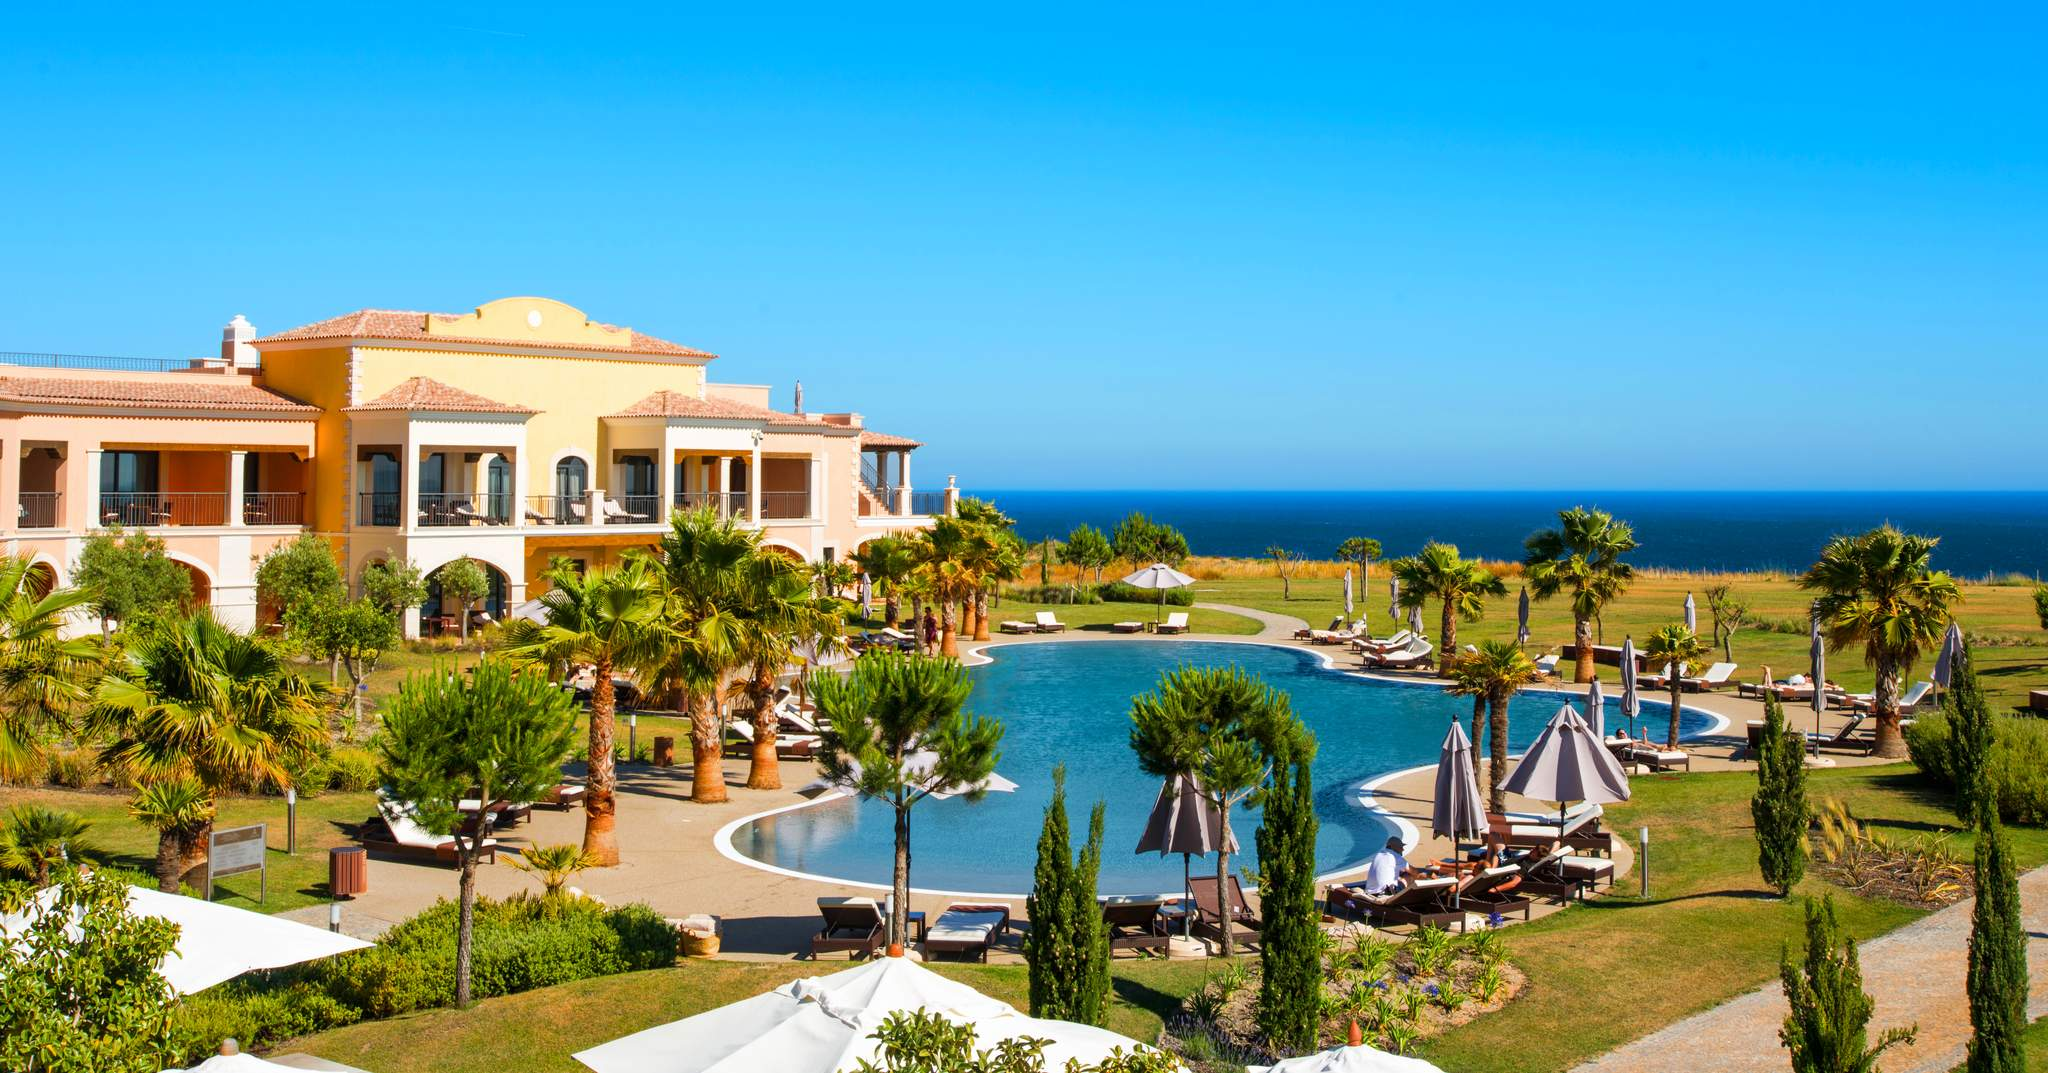 Cascade Wellness  Lifestyle Resort in Lagos Portugal